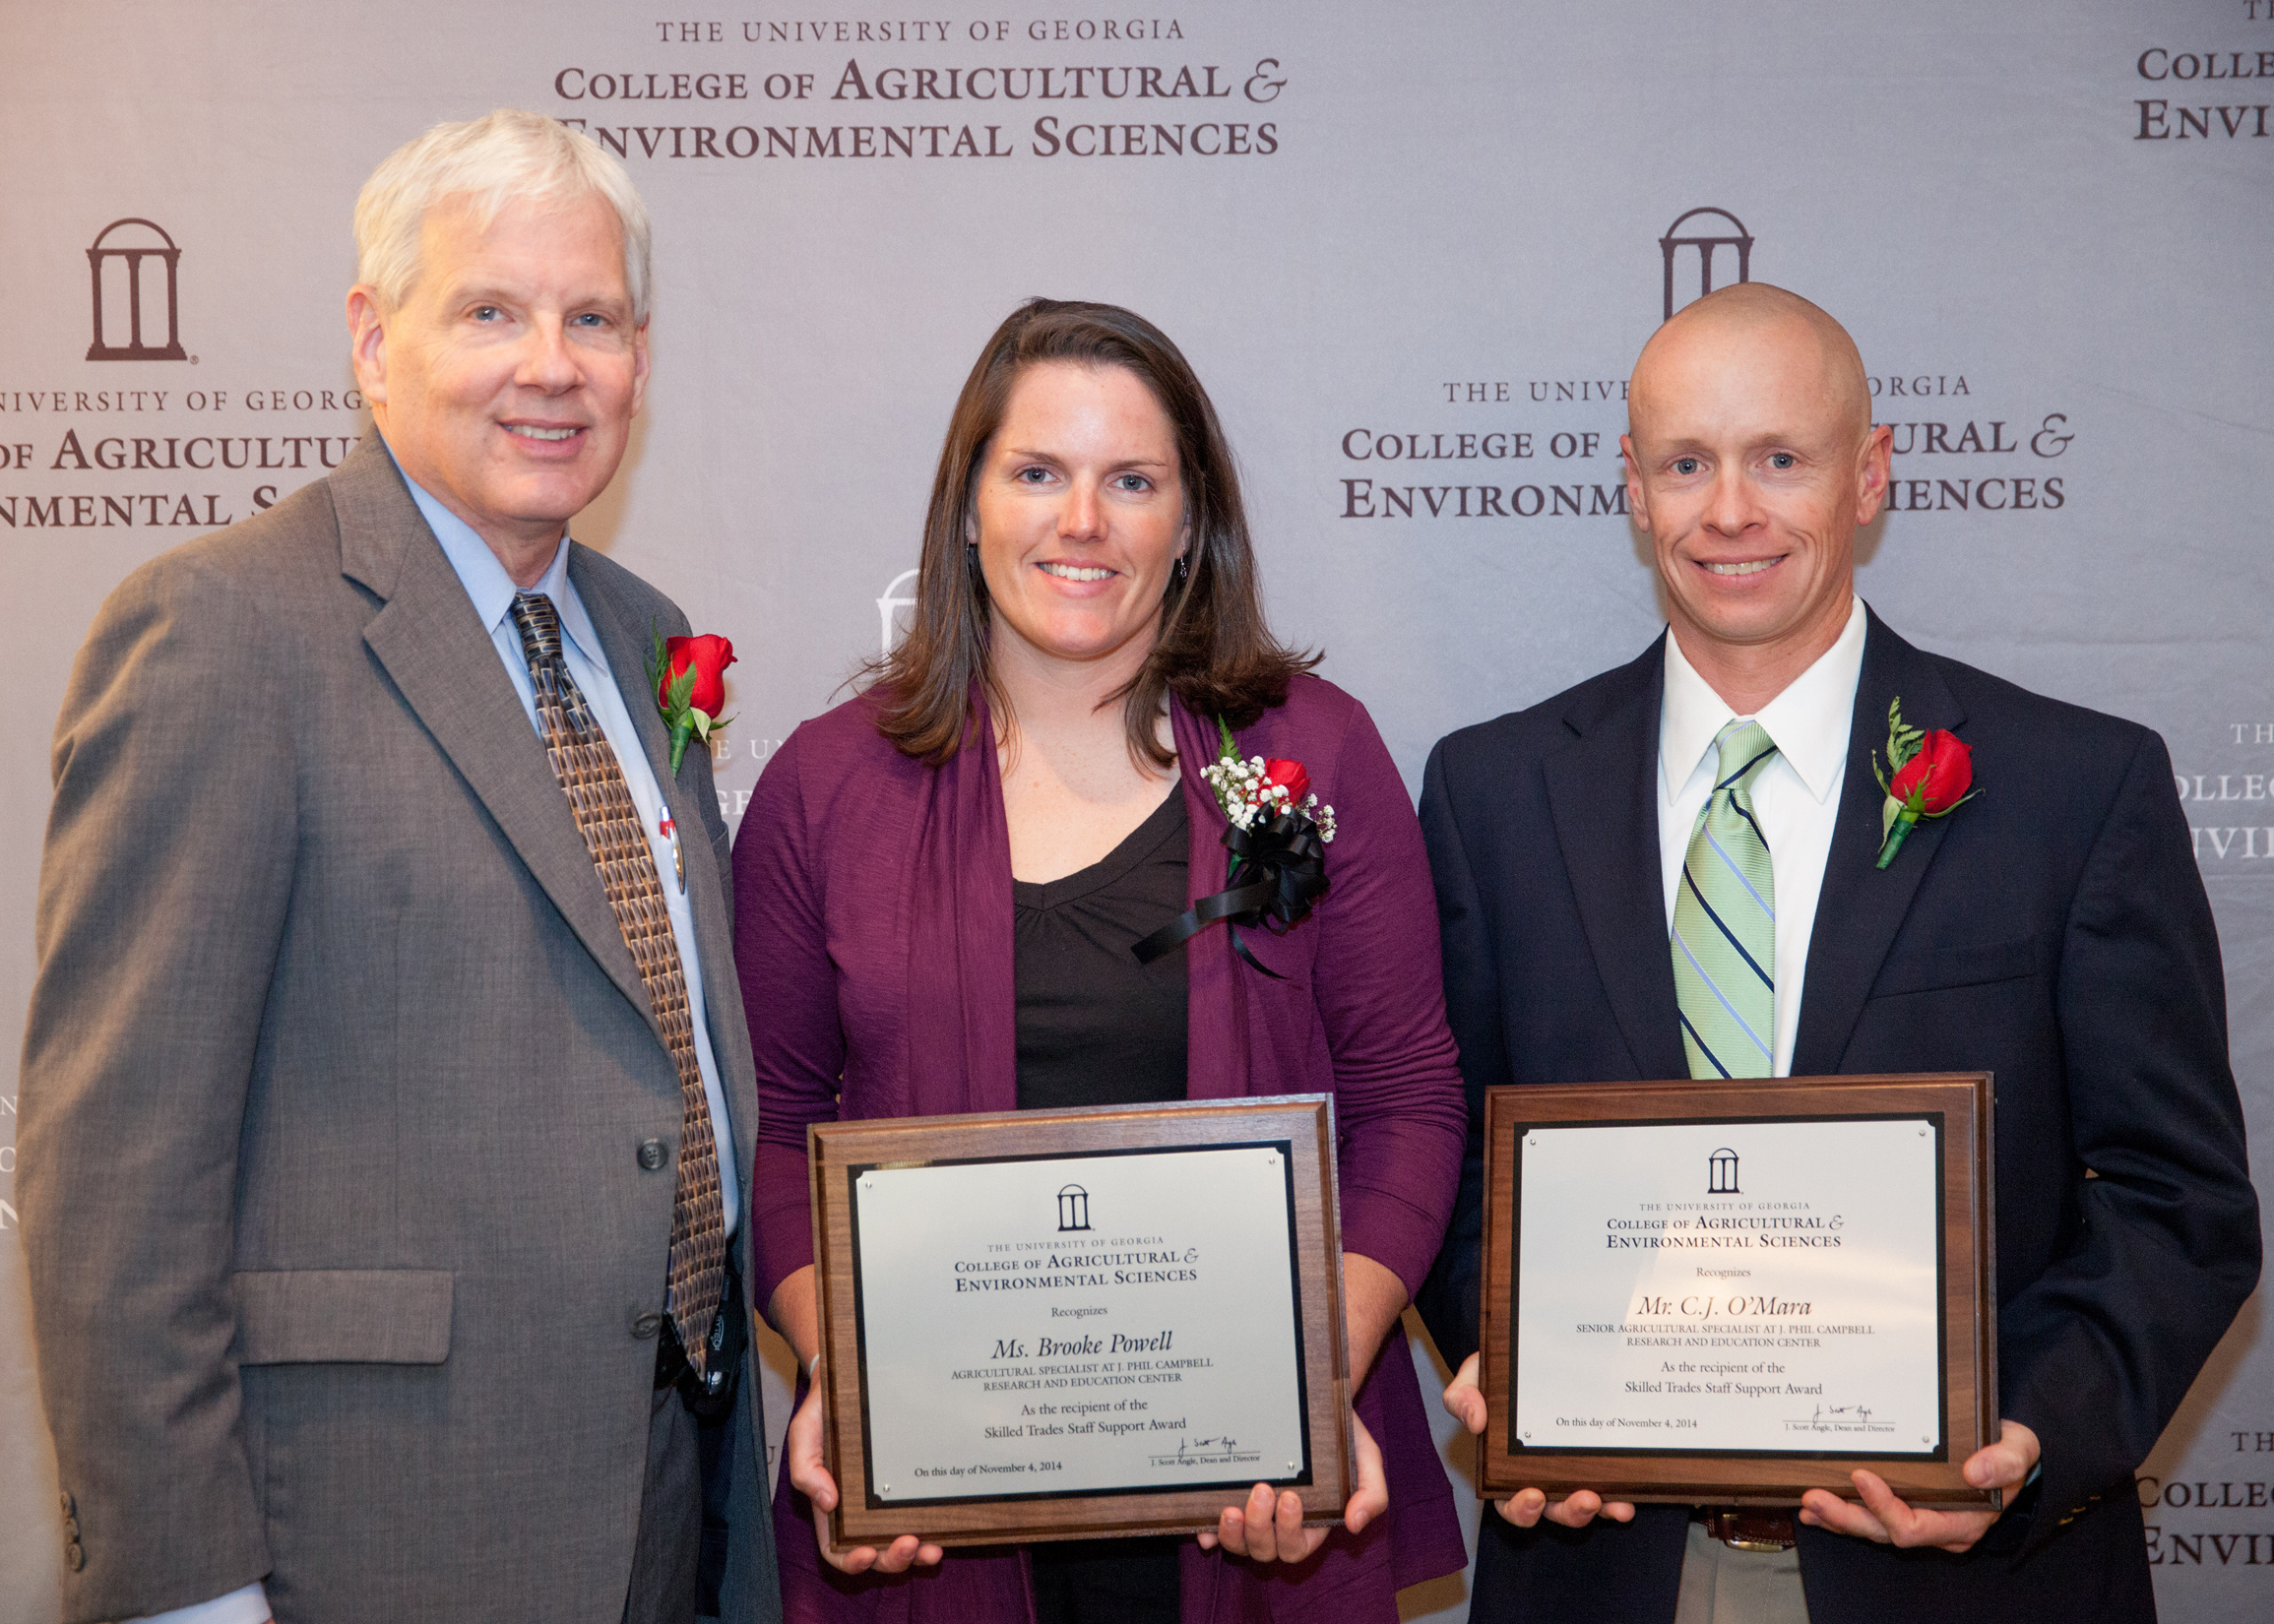 Dean J. Scott Angle presents C.J. O'Mara, senior agricultural specialist, and Brooke Powell, agricultural specialist, of the J. Phil Campbell Sr. Research and Education Center, with the CAES Award for Skilled Trades Support. O'Mara and Powell managed the on-the-ground transition of the 1,055-acre research farm as is it changed hands from the U.S. Department of Agriculture to UGA's ownership.